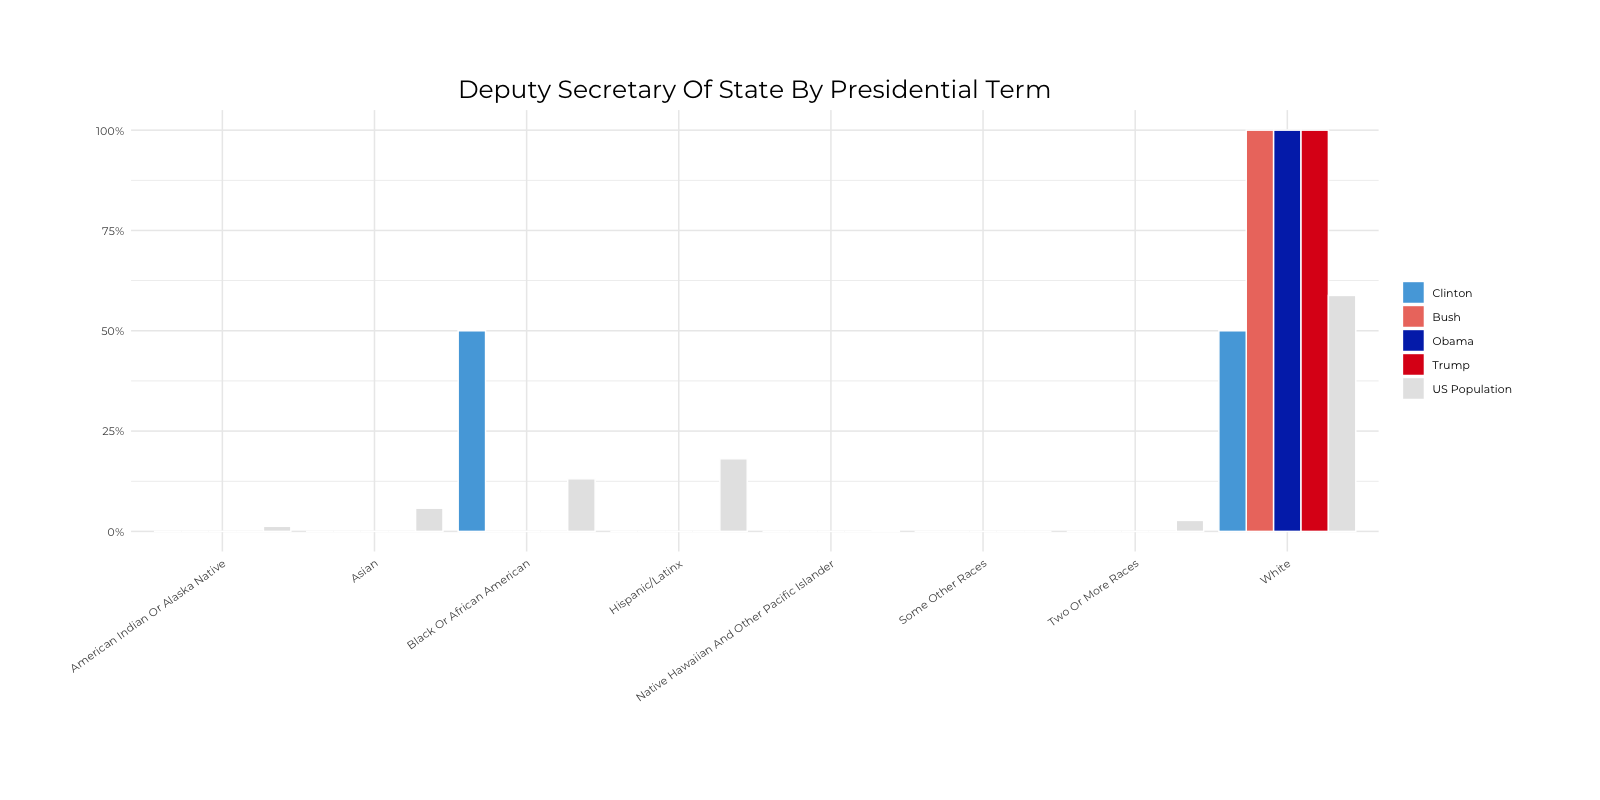 Graph about Racial Composition Comparison of Deputy Secretary of State by Presidential Terms. More detailed text description below.